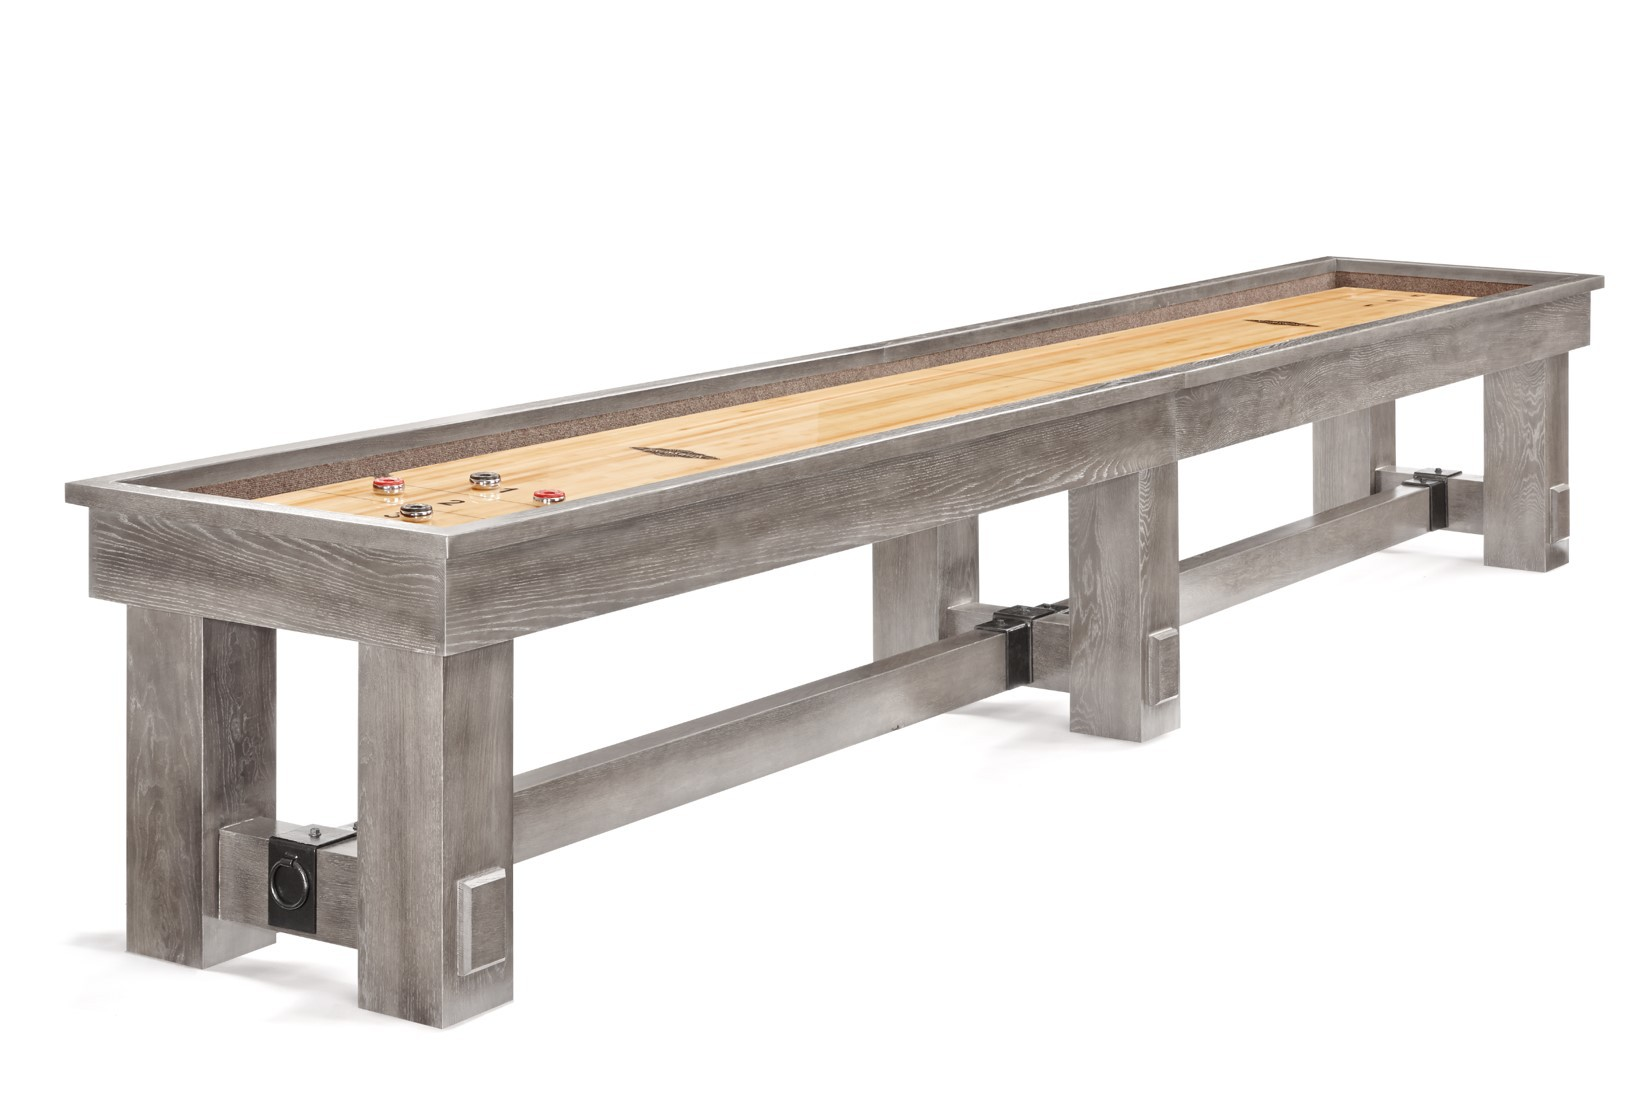 Cincinnati wheat wooden shuffleboard table for sale